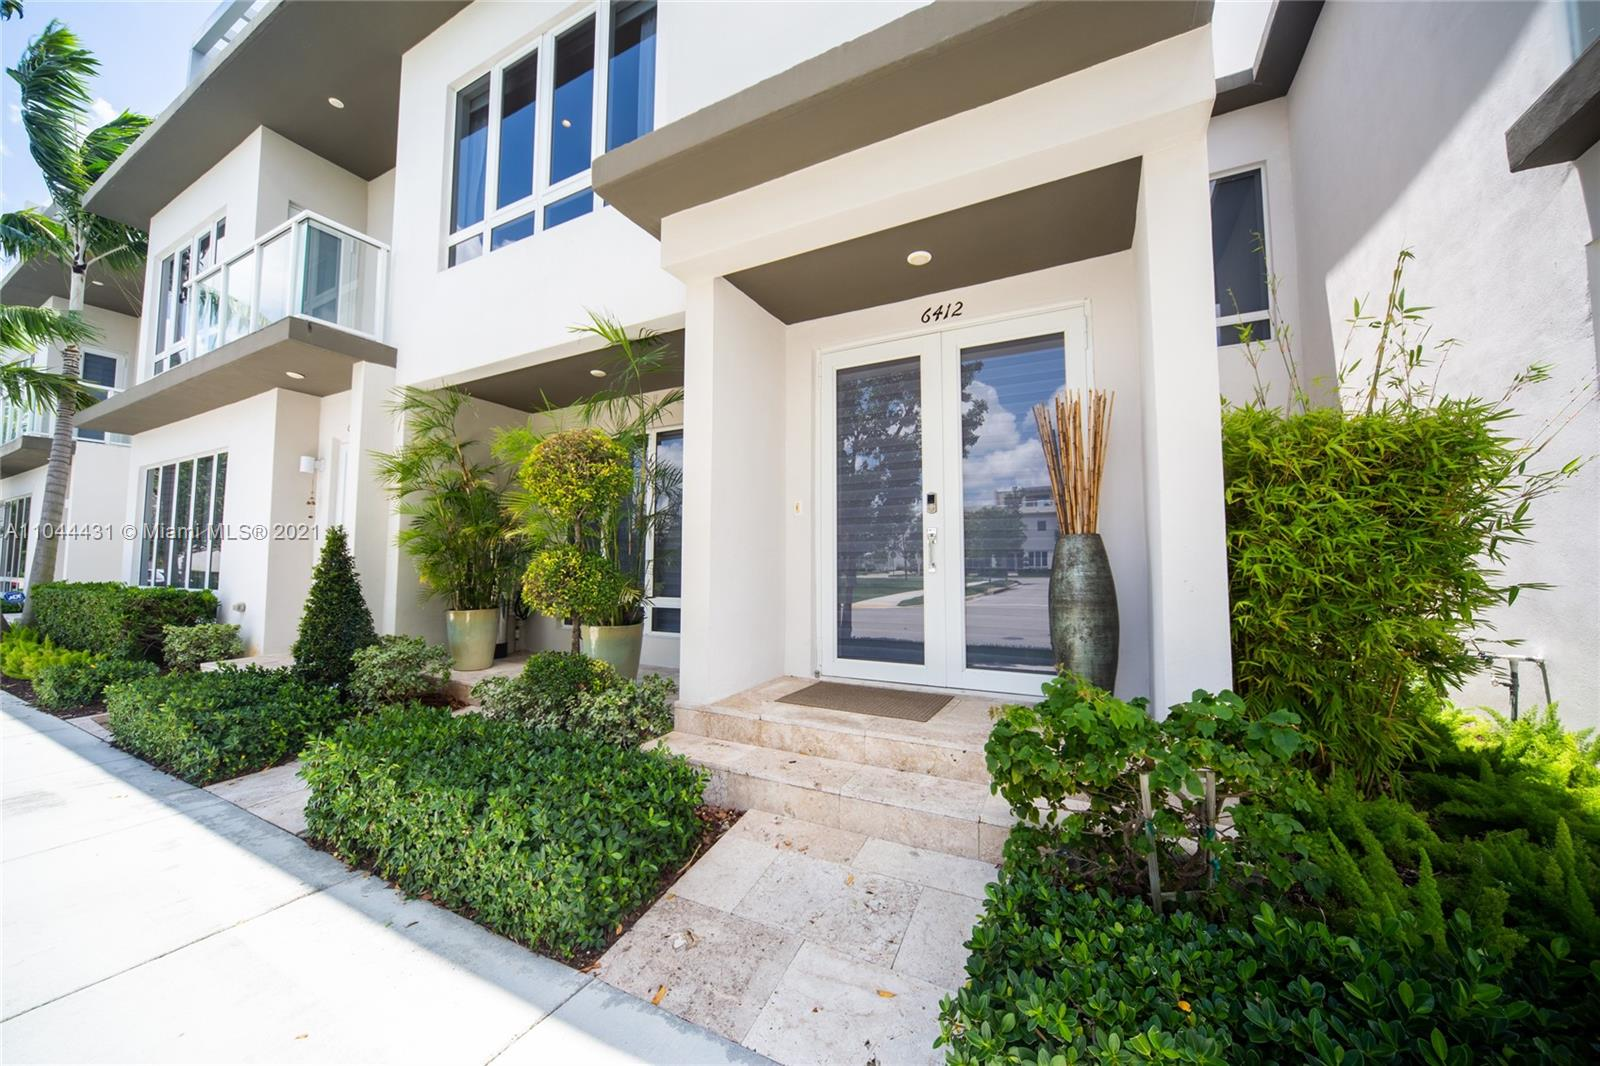 """PLEASE READ --- NEXT-GEN property. Biggest LOT in the condo. Beautiful home in the best community of Doral - """"Landmark"""". Main house with 3 spacious bedrooms & 3 modern bathrooms. External efficiency with independent entrance with 1-bedroom area + bathroom + kitchenette + washer/Dryer combo. High end appliances and quartz countertops in kitchen and baths. House is rented on a month to month for $3,000 and efficiency for $1,400. Plenty of upside to rent the house for up to $3,900 just the main house plus next-gen income. Great income producing property. Lowest HOA in the area - only $265. Send offer before looking at the house. Owner ready to sell."""